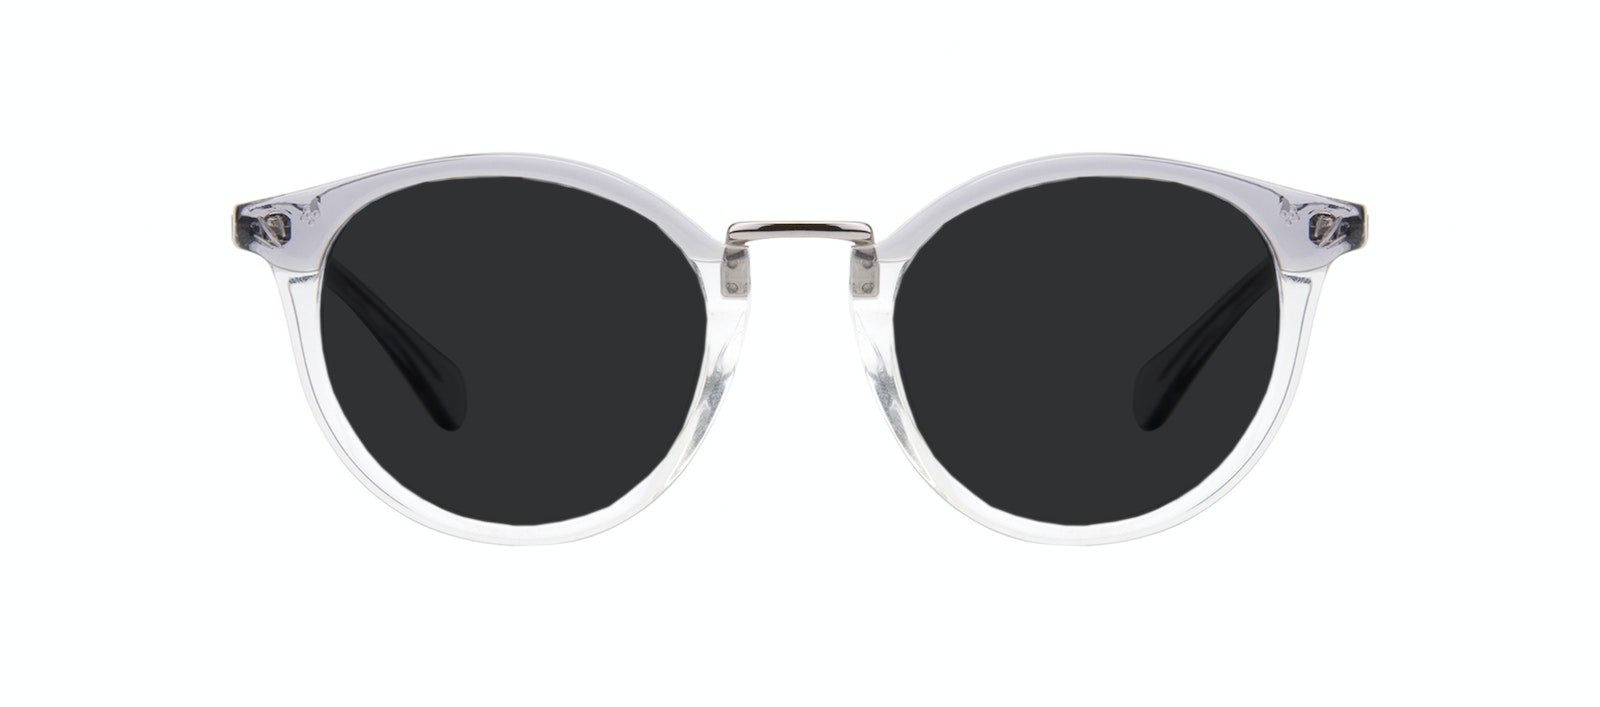 Affordable Fashion Glasses Round Sunglasses Women Self Grey Front